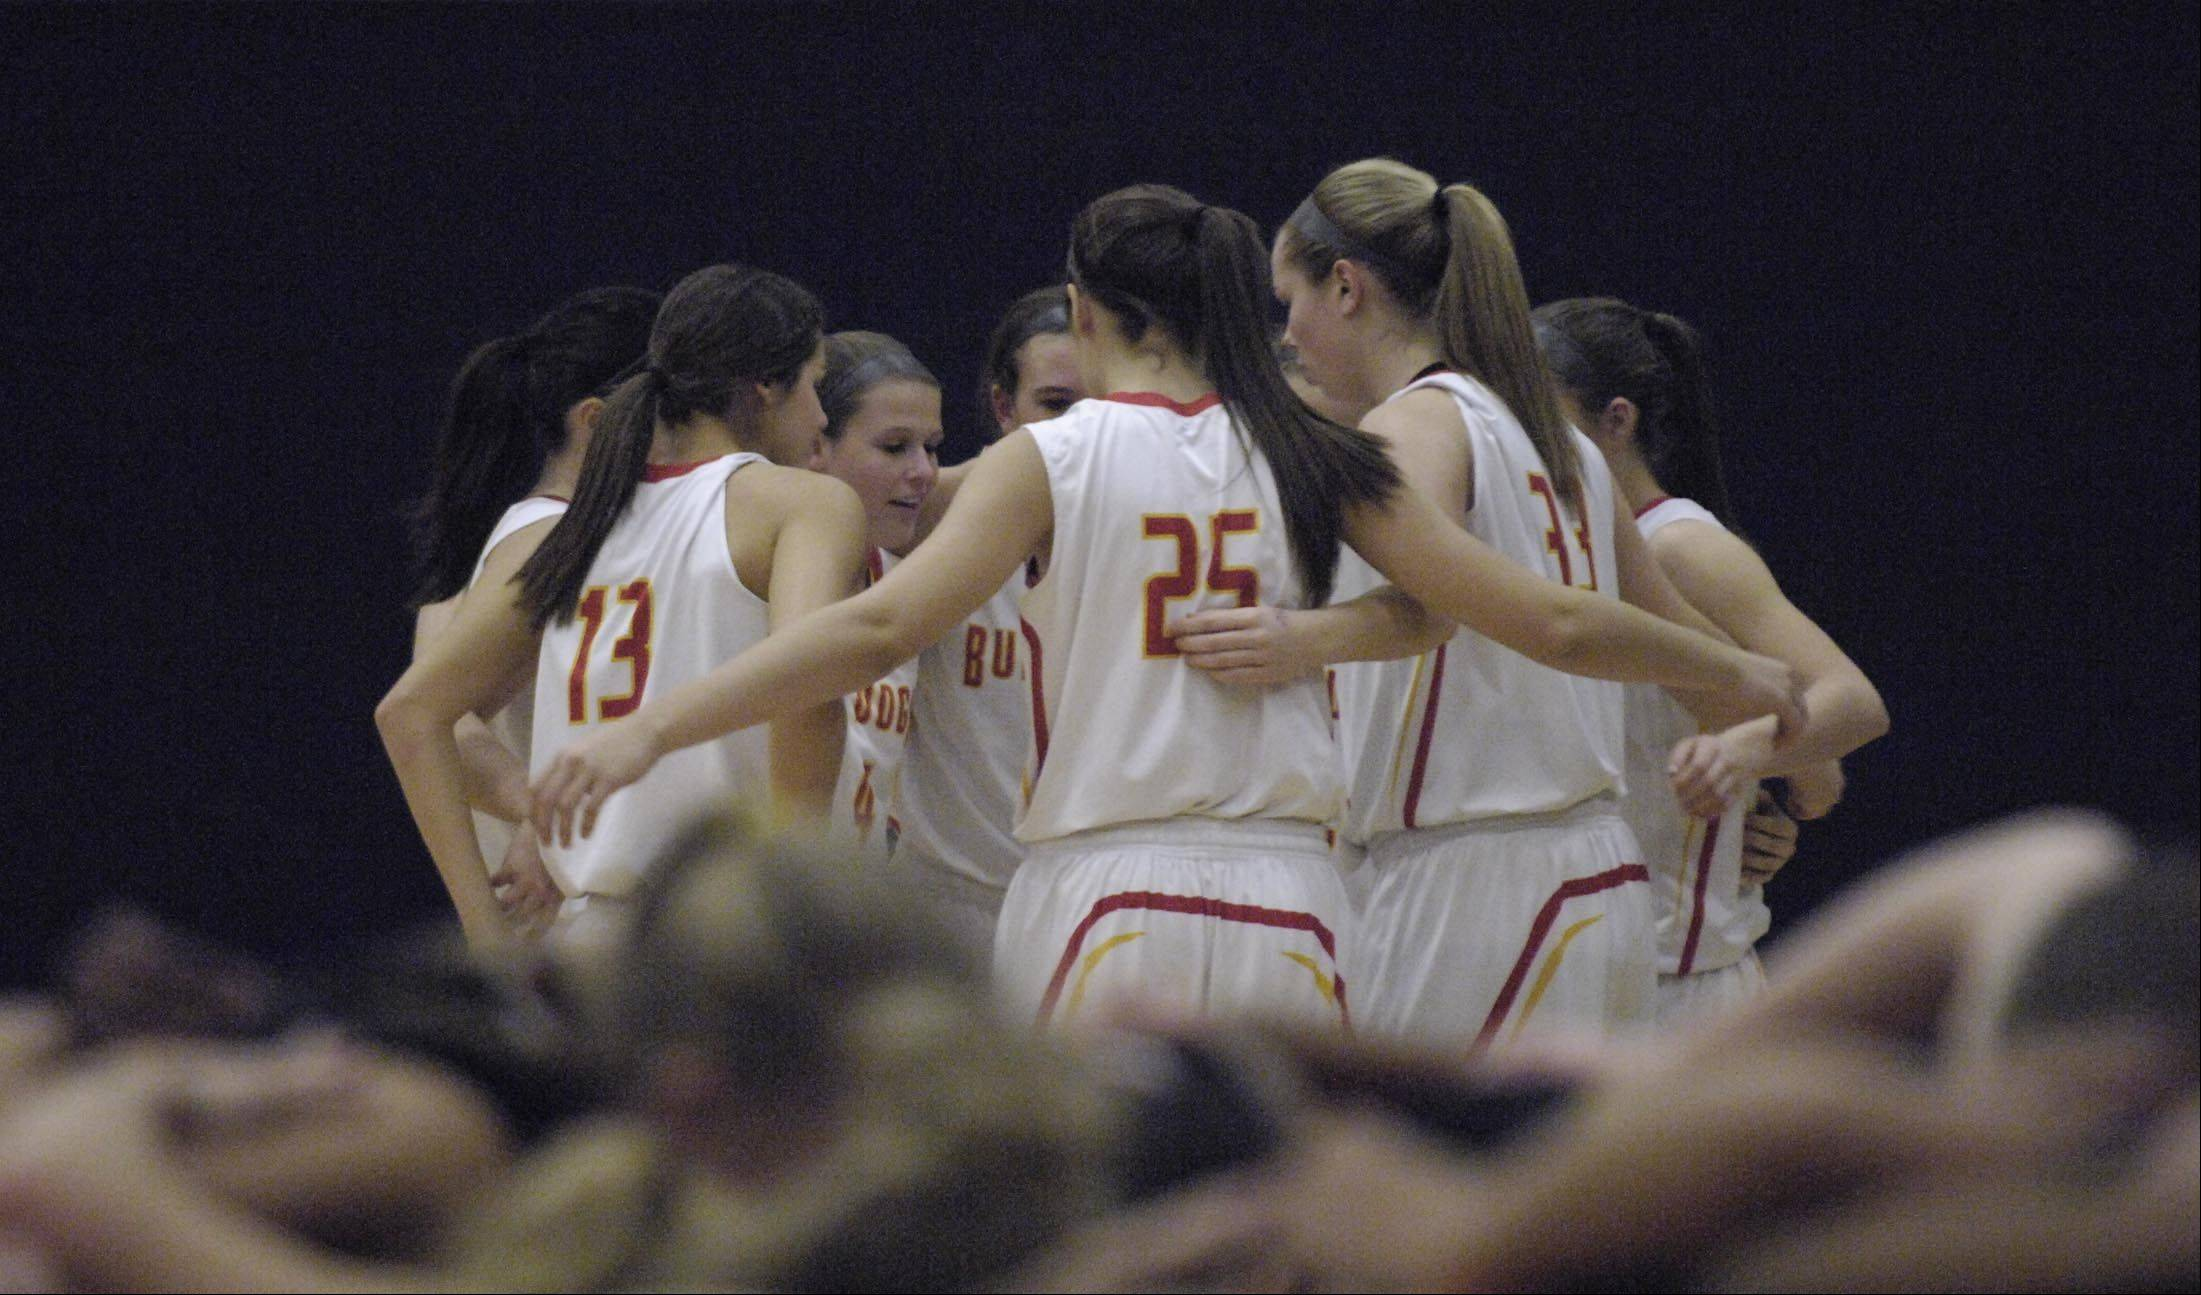 Images: Batavia vs. Minooka, girls basketball